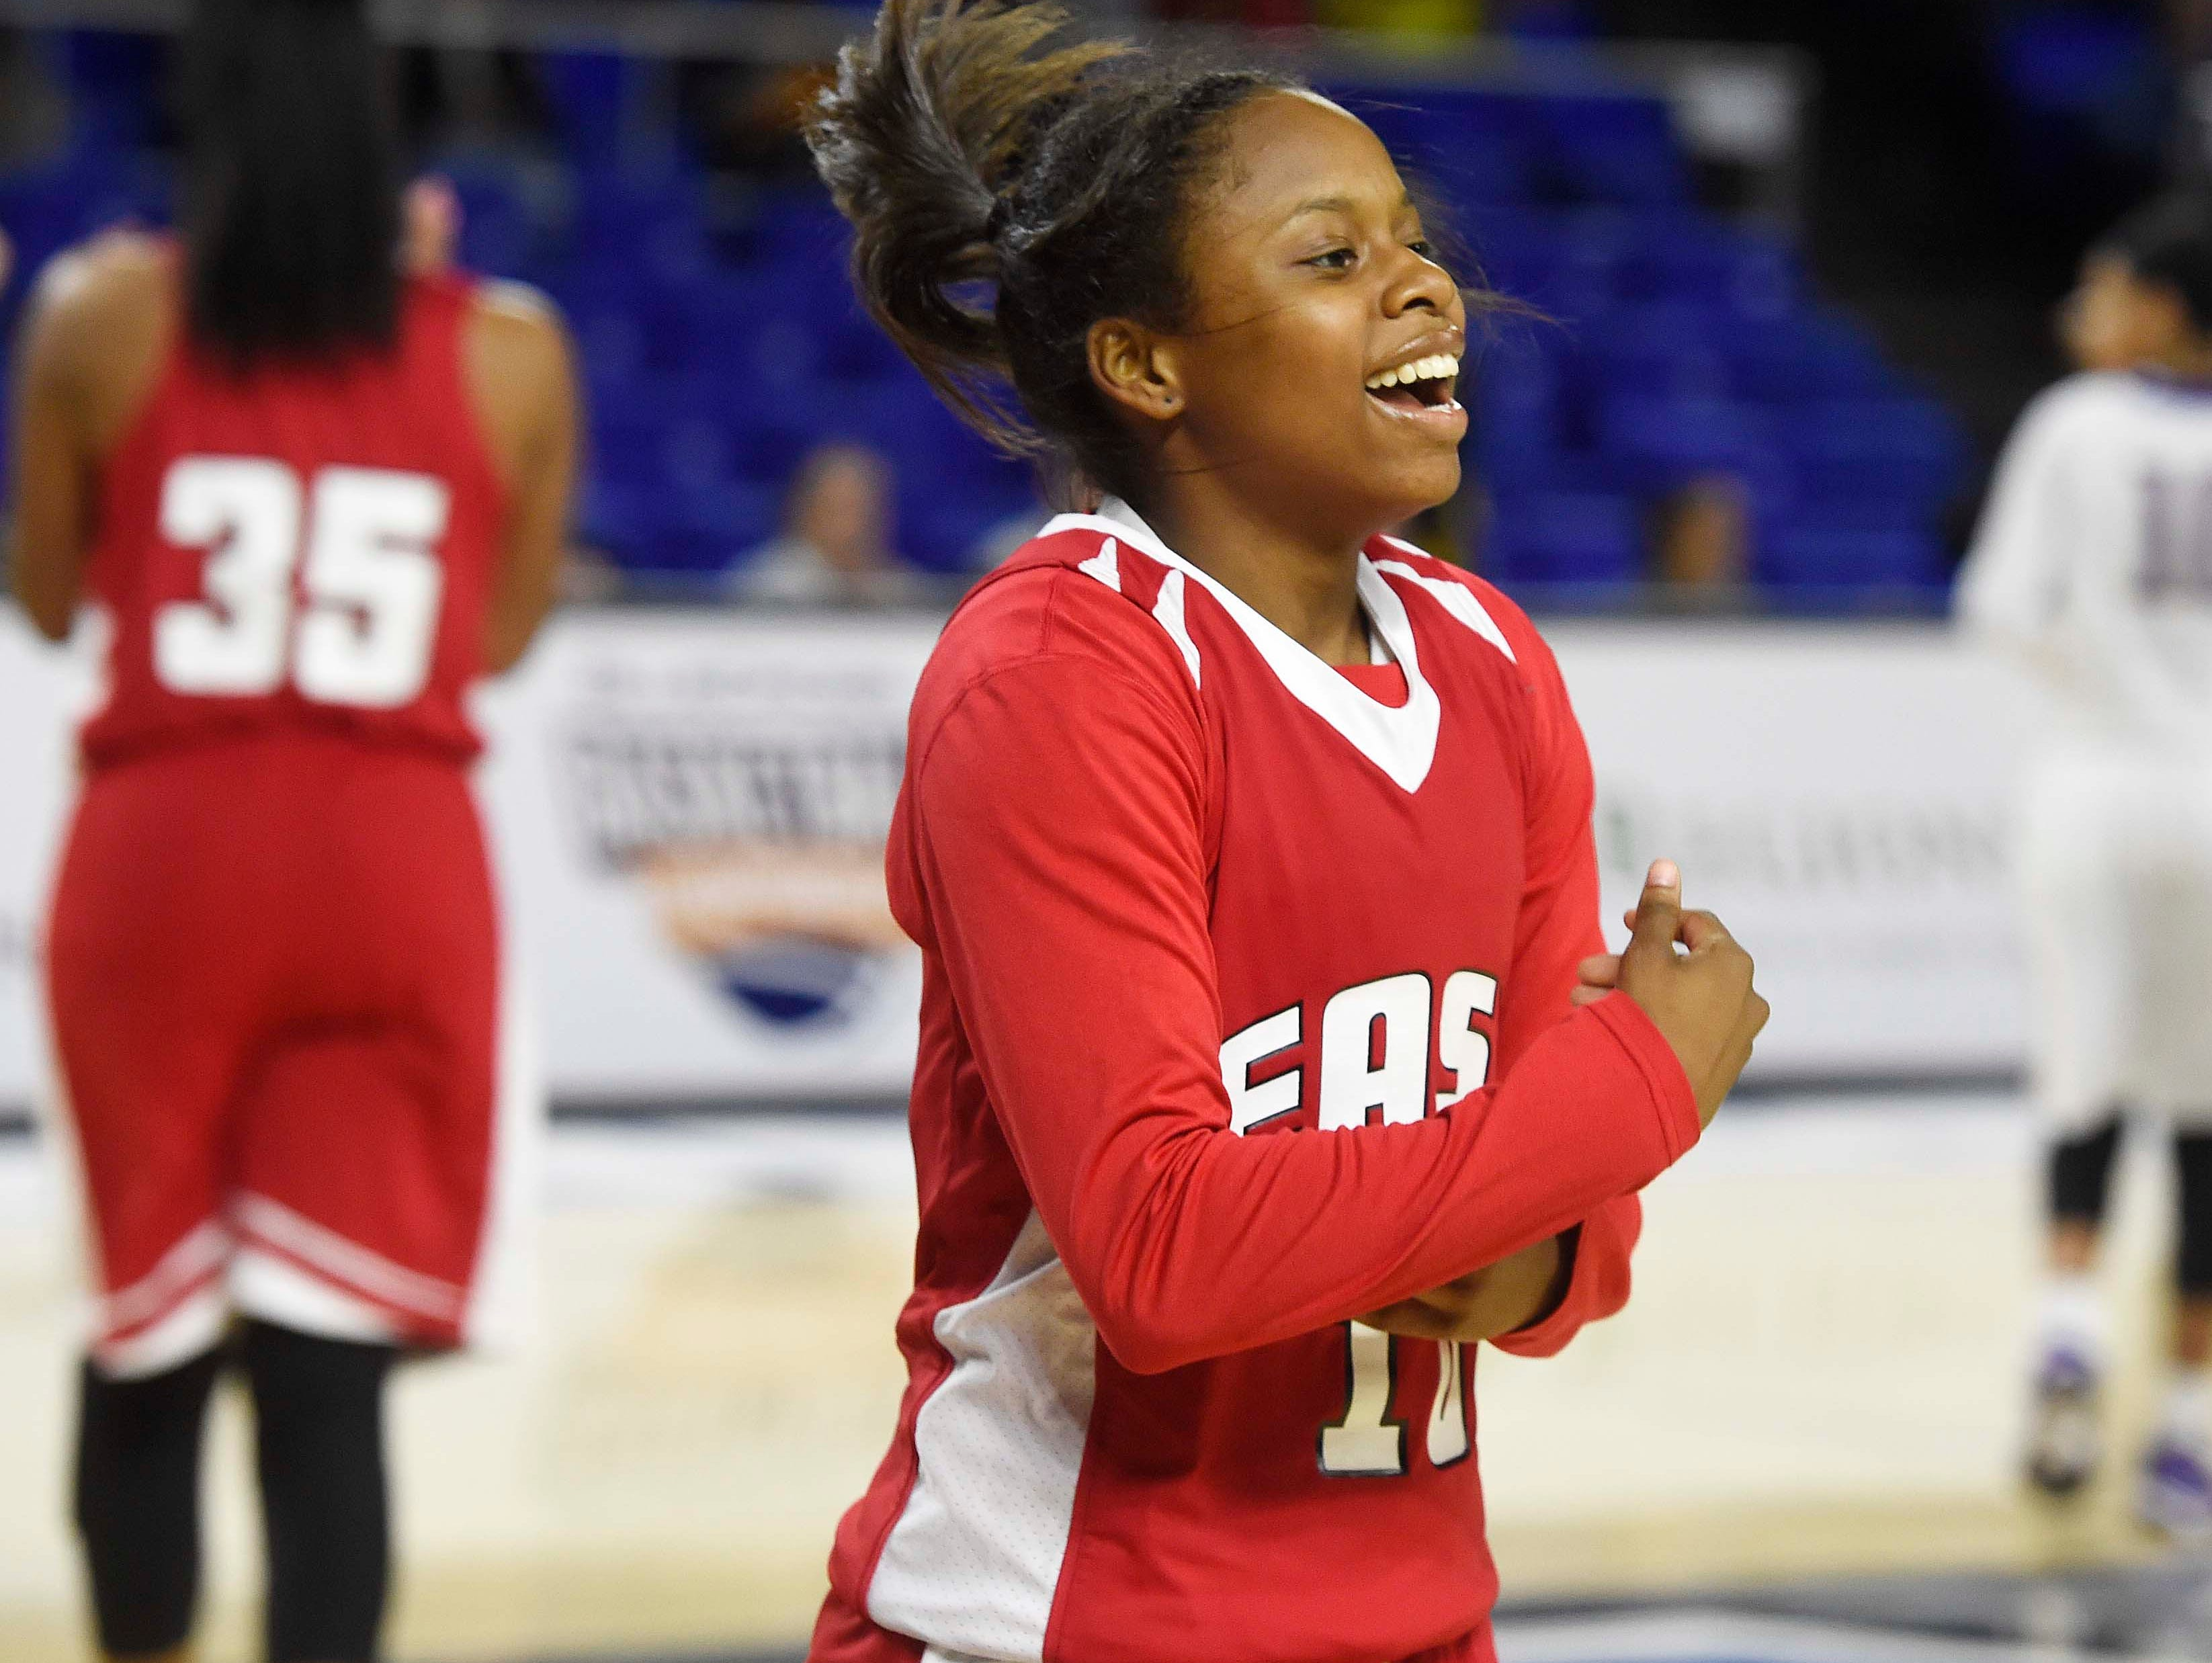 East's Le'Jzae Davidson (10) celebrates a victory as East Nashville wins 47-35 in the Division I Class AA Girl's basketball tournament at the Murphy Center on MTSU's campus March 10, 2016 in Murfreesboro, Tenn.